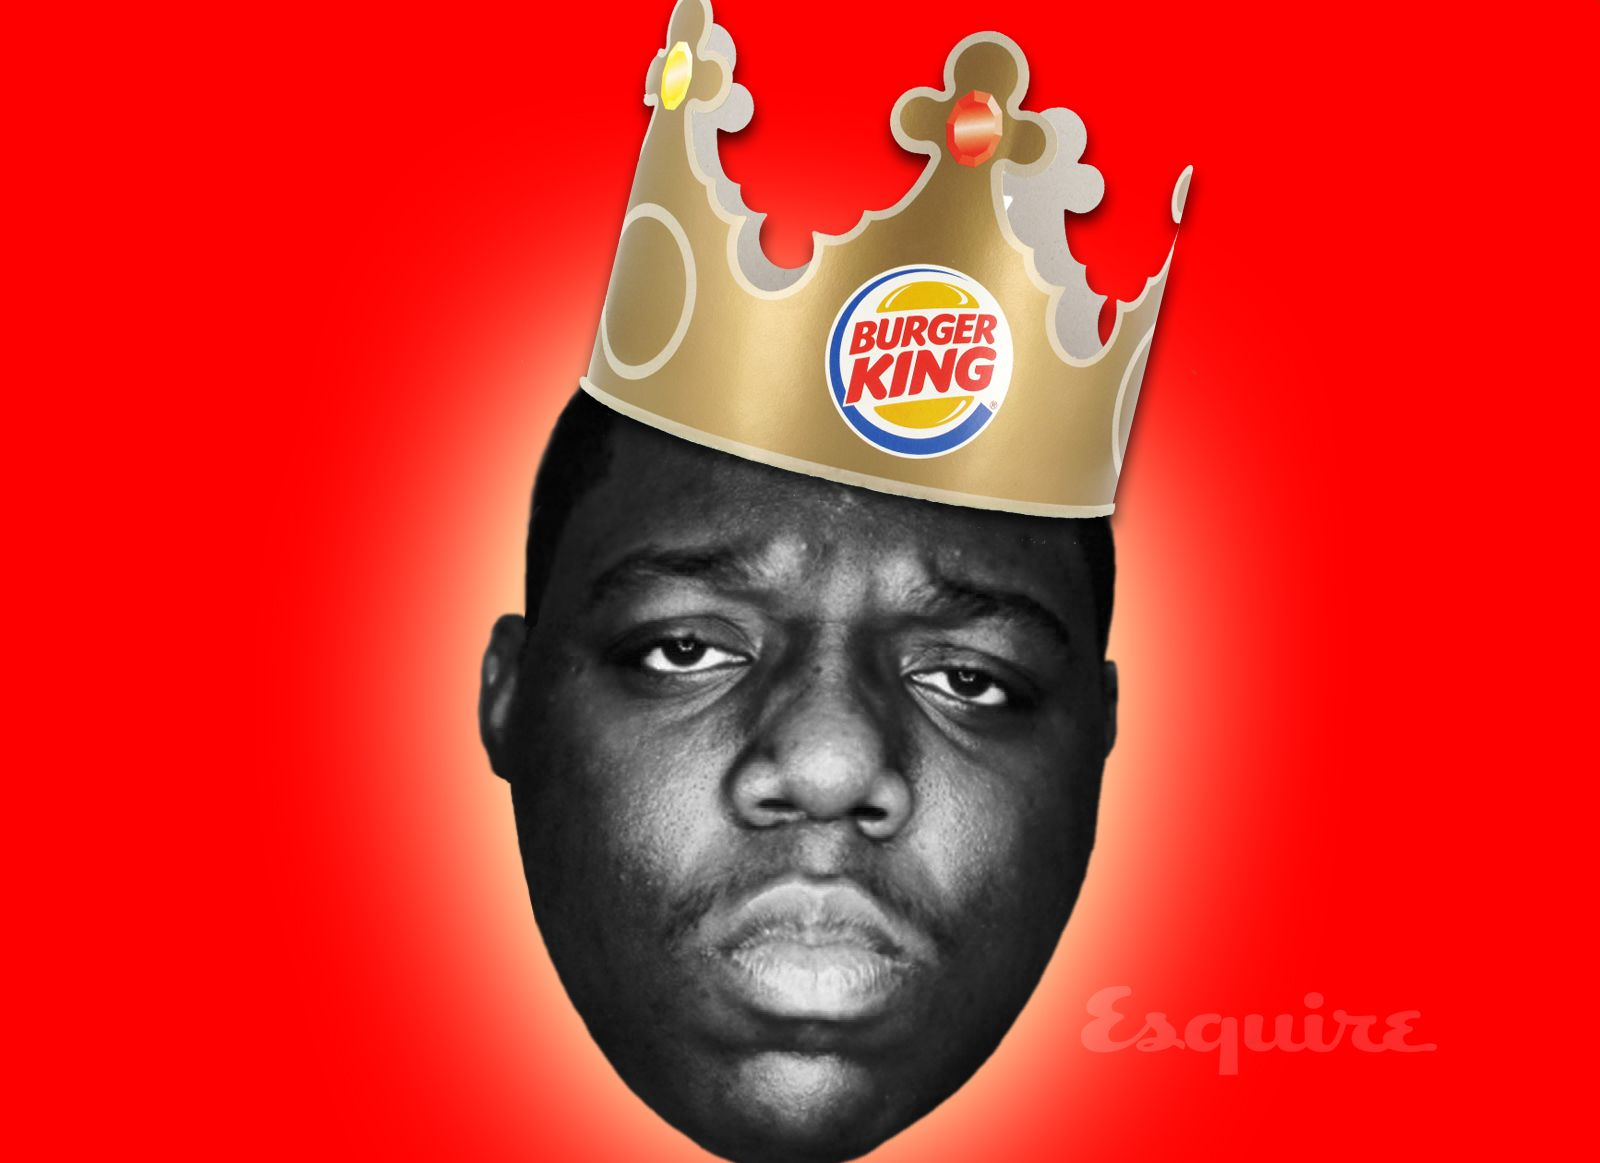 The Best Hip-Hop Songs About Food